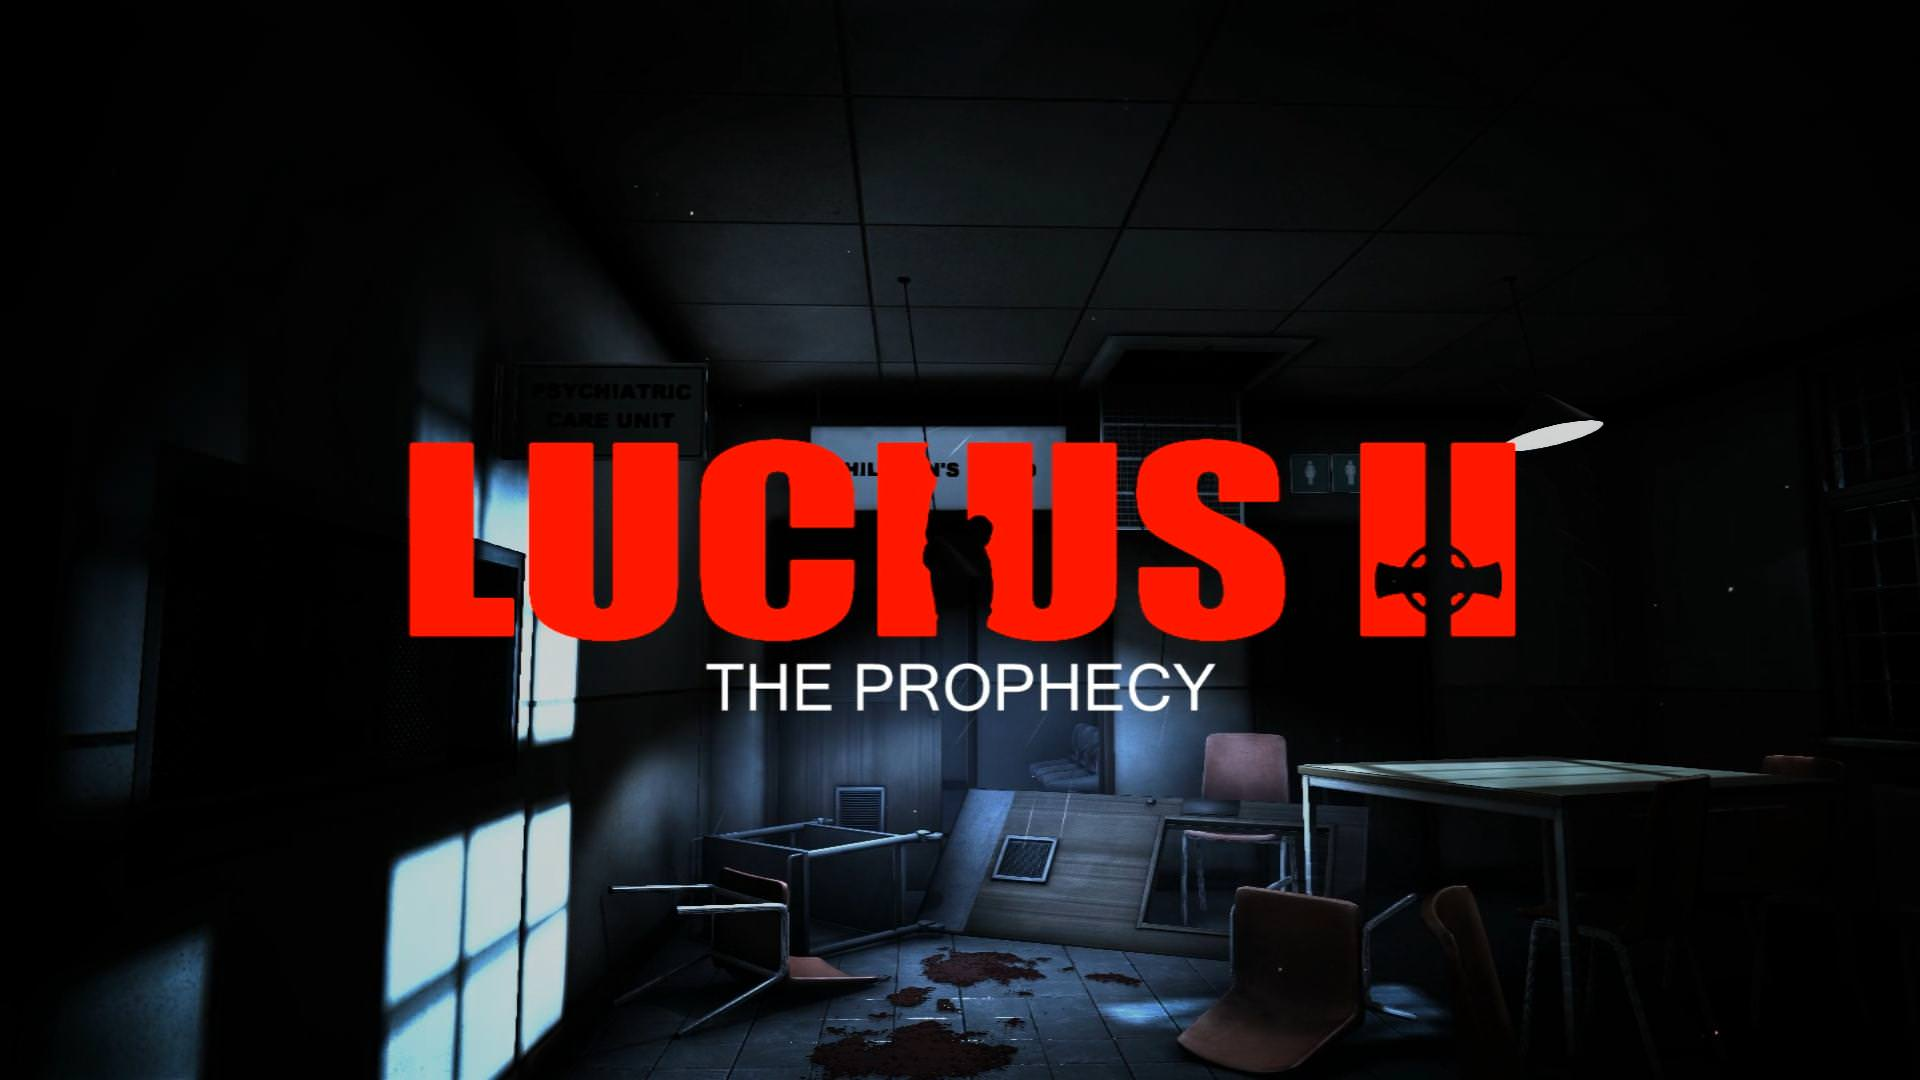 Lucius-2-The-Prophecy-06